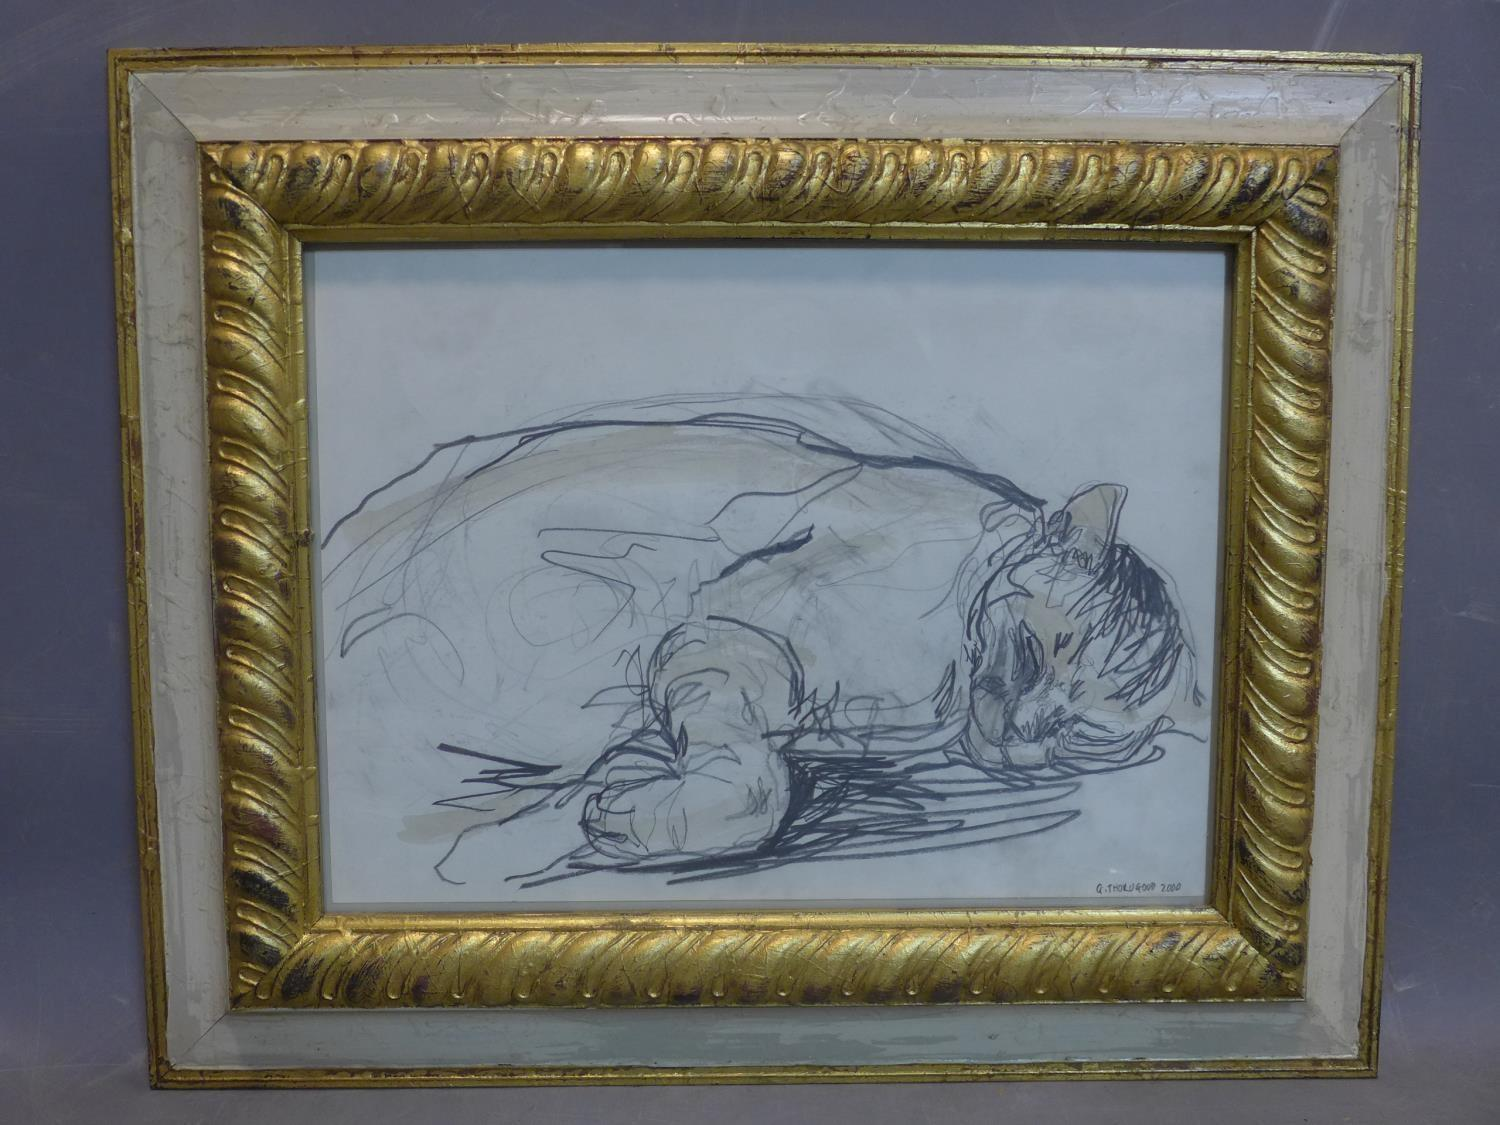 Lot 54 - Contemporary British draughtsman, sleeping cat, pencil and watercolour, signed and dated 'G.